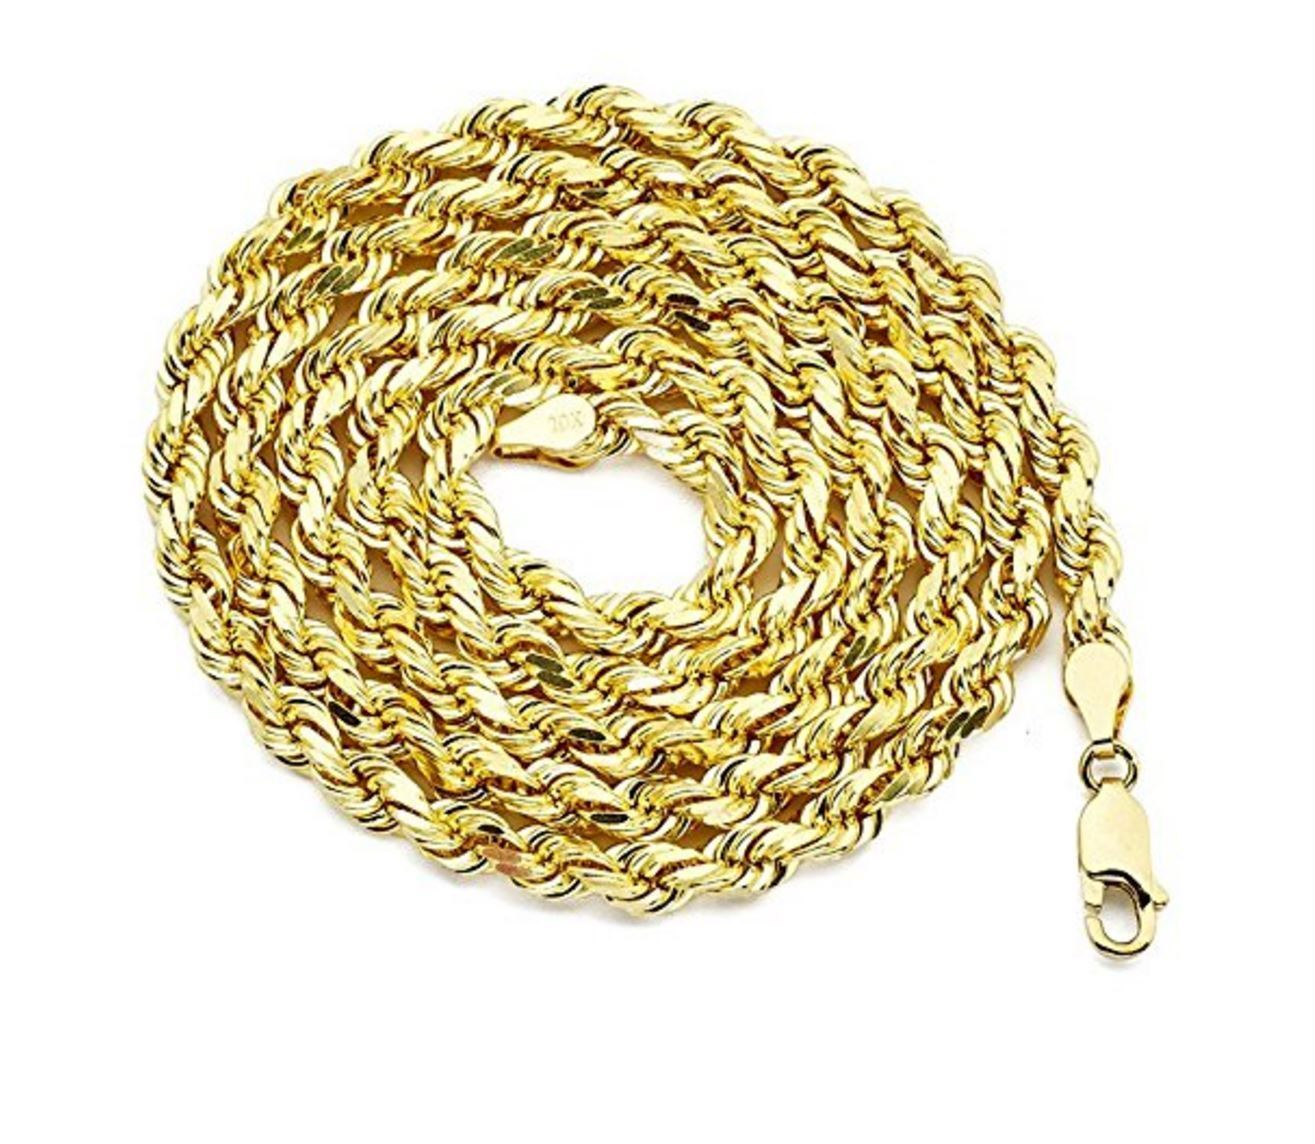 10K Yellow Gold 1.8mm – 8mm Men's Women's Hollow Diamond Cut Rope Chain Necklace Fine Jewelry